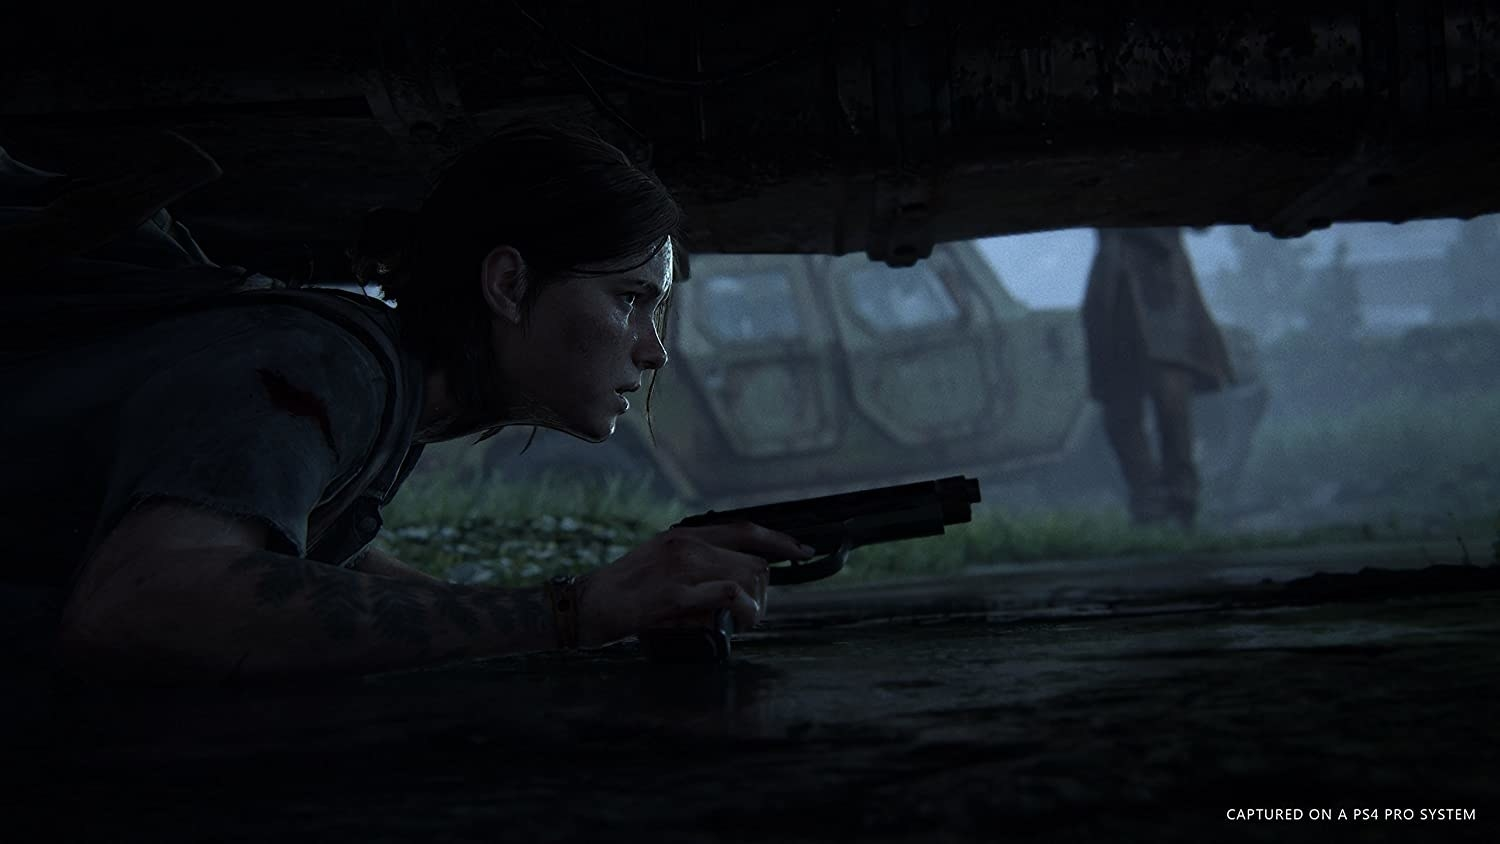 A character crouched under a vehicle aiming a gun